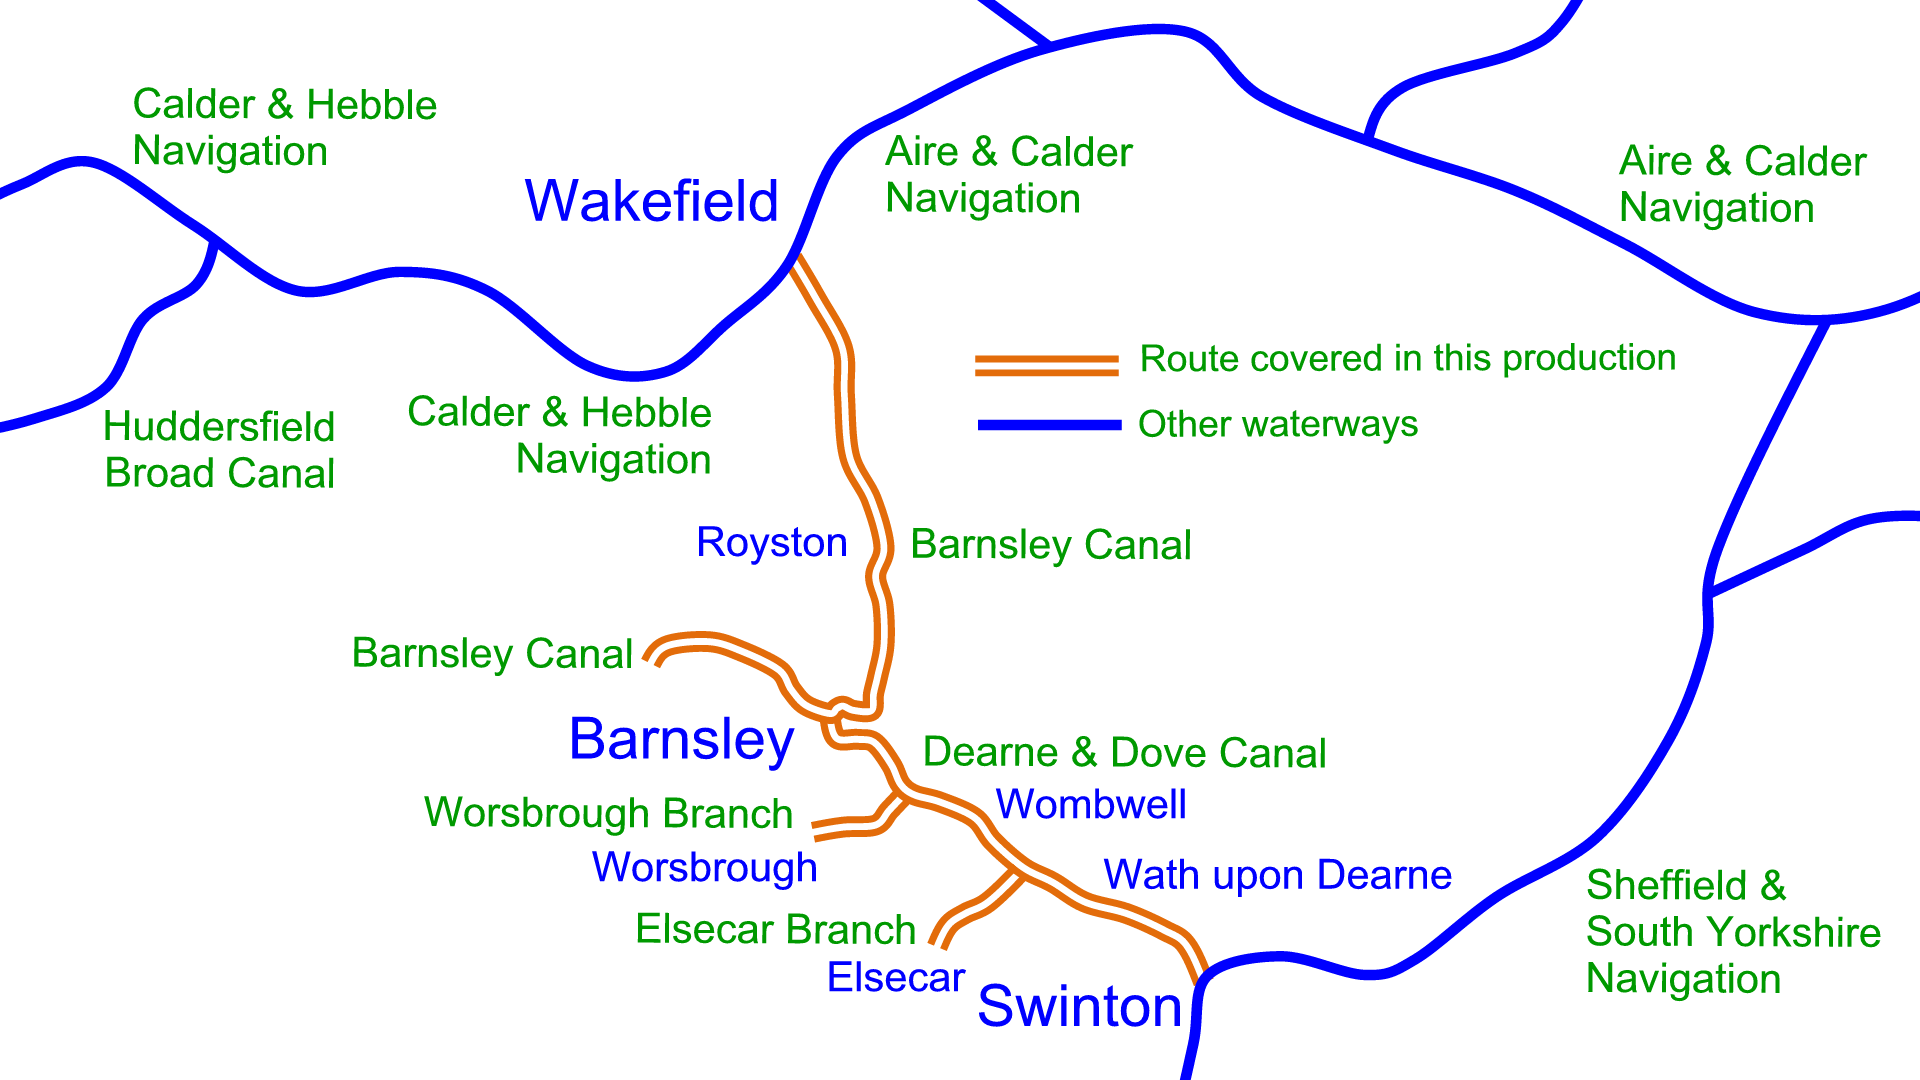 Overview map of the Barnsley and Dearne & Dove Canals